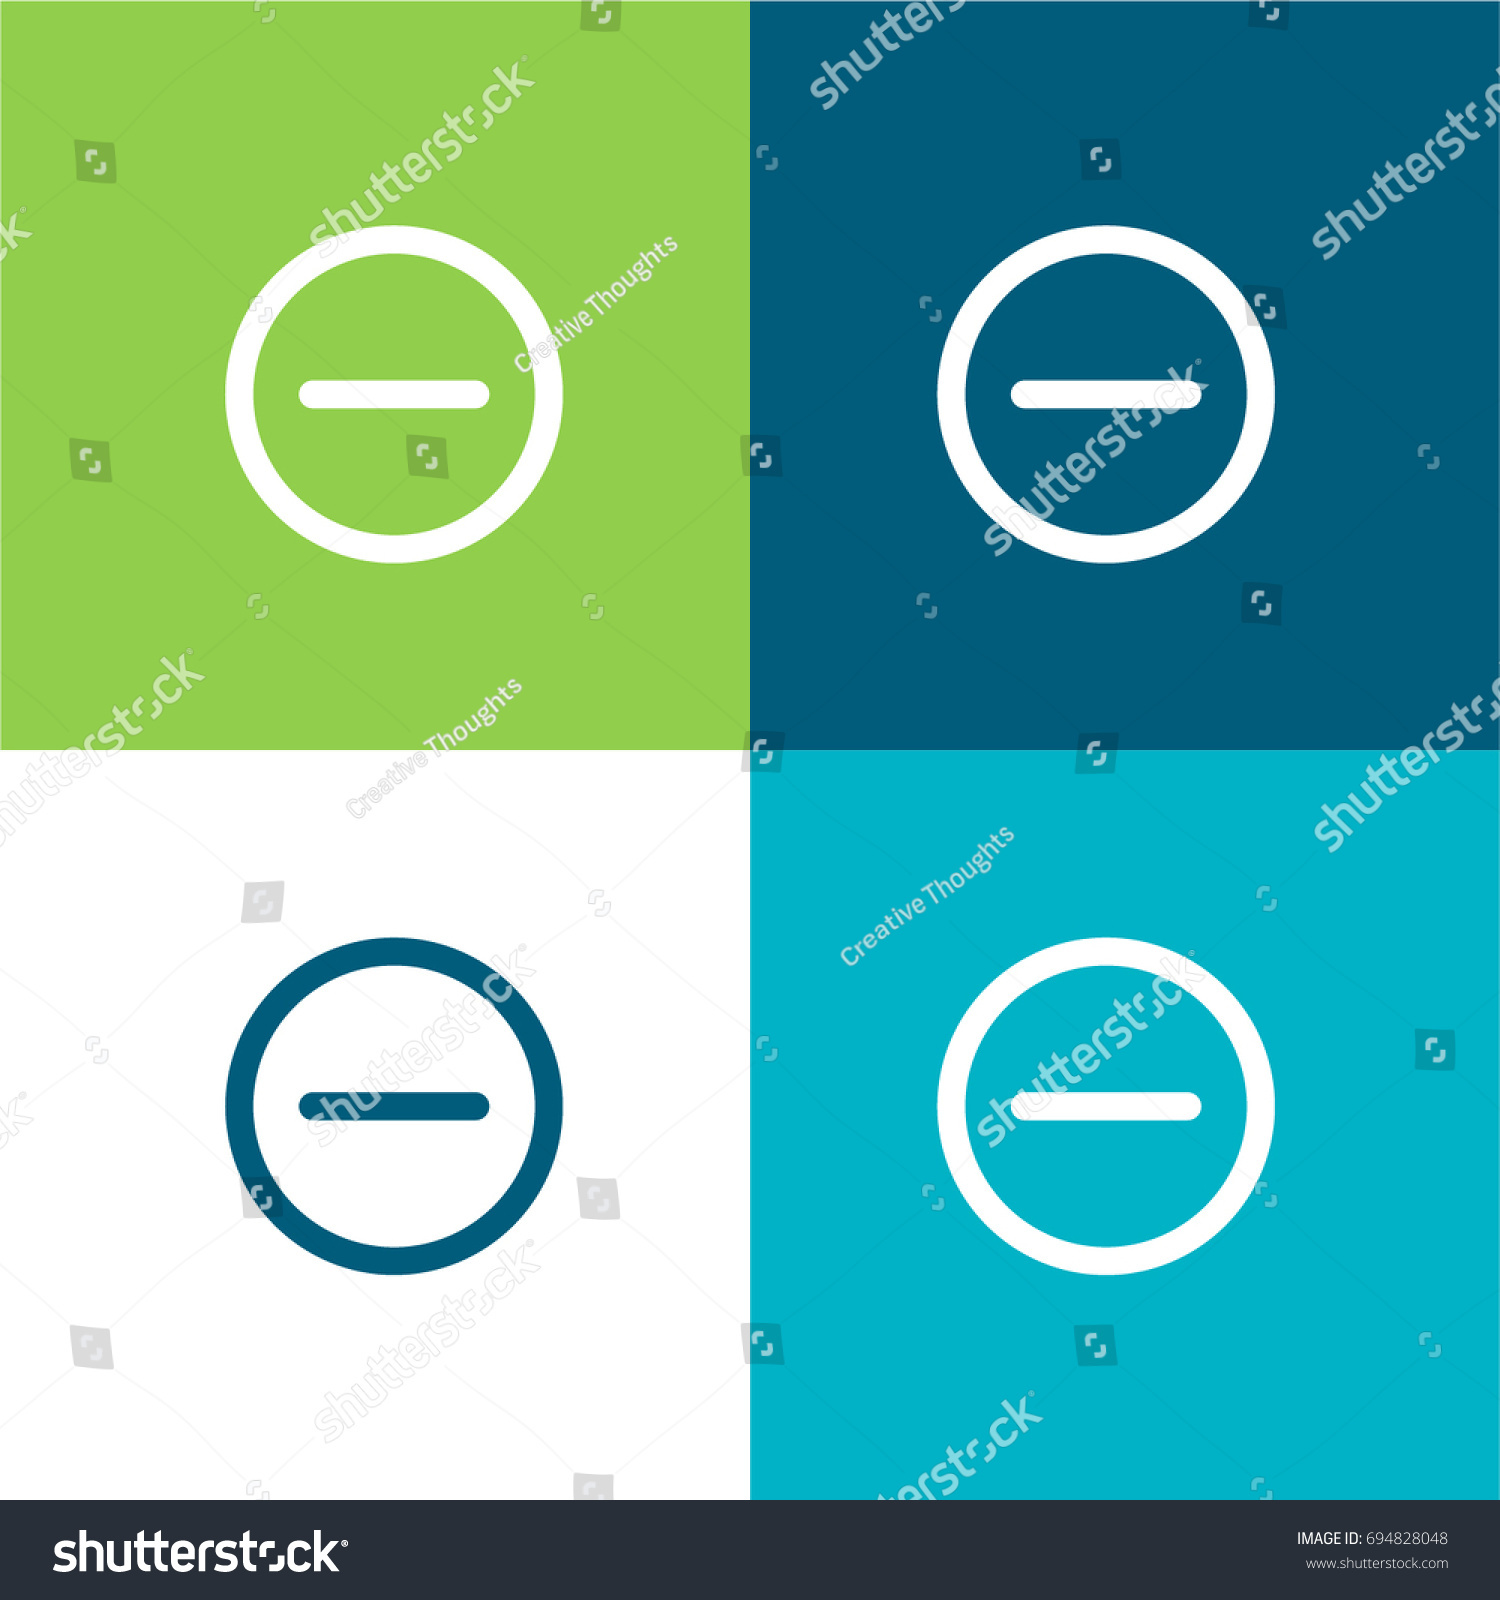 Subtracting Button Green Blue Material Color Stock Vector 694828048 ...